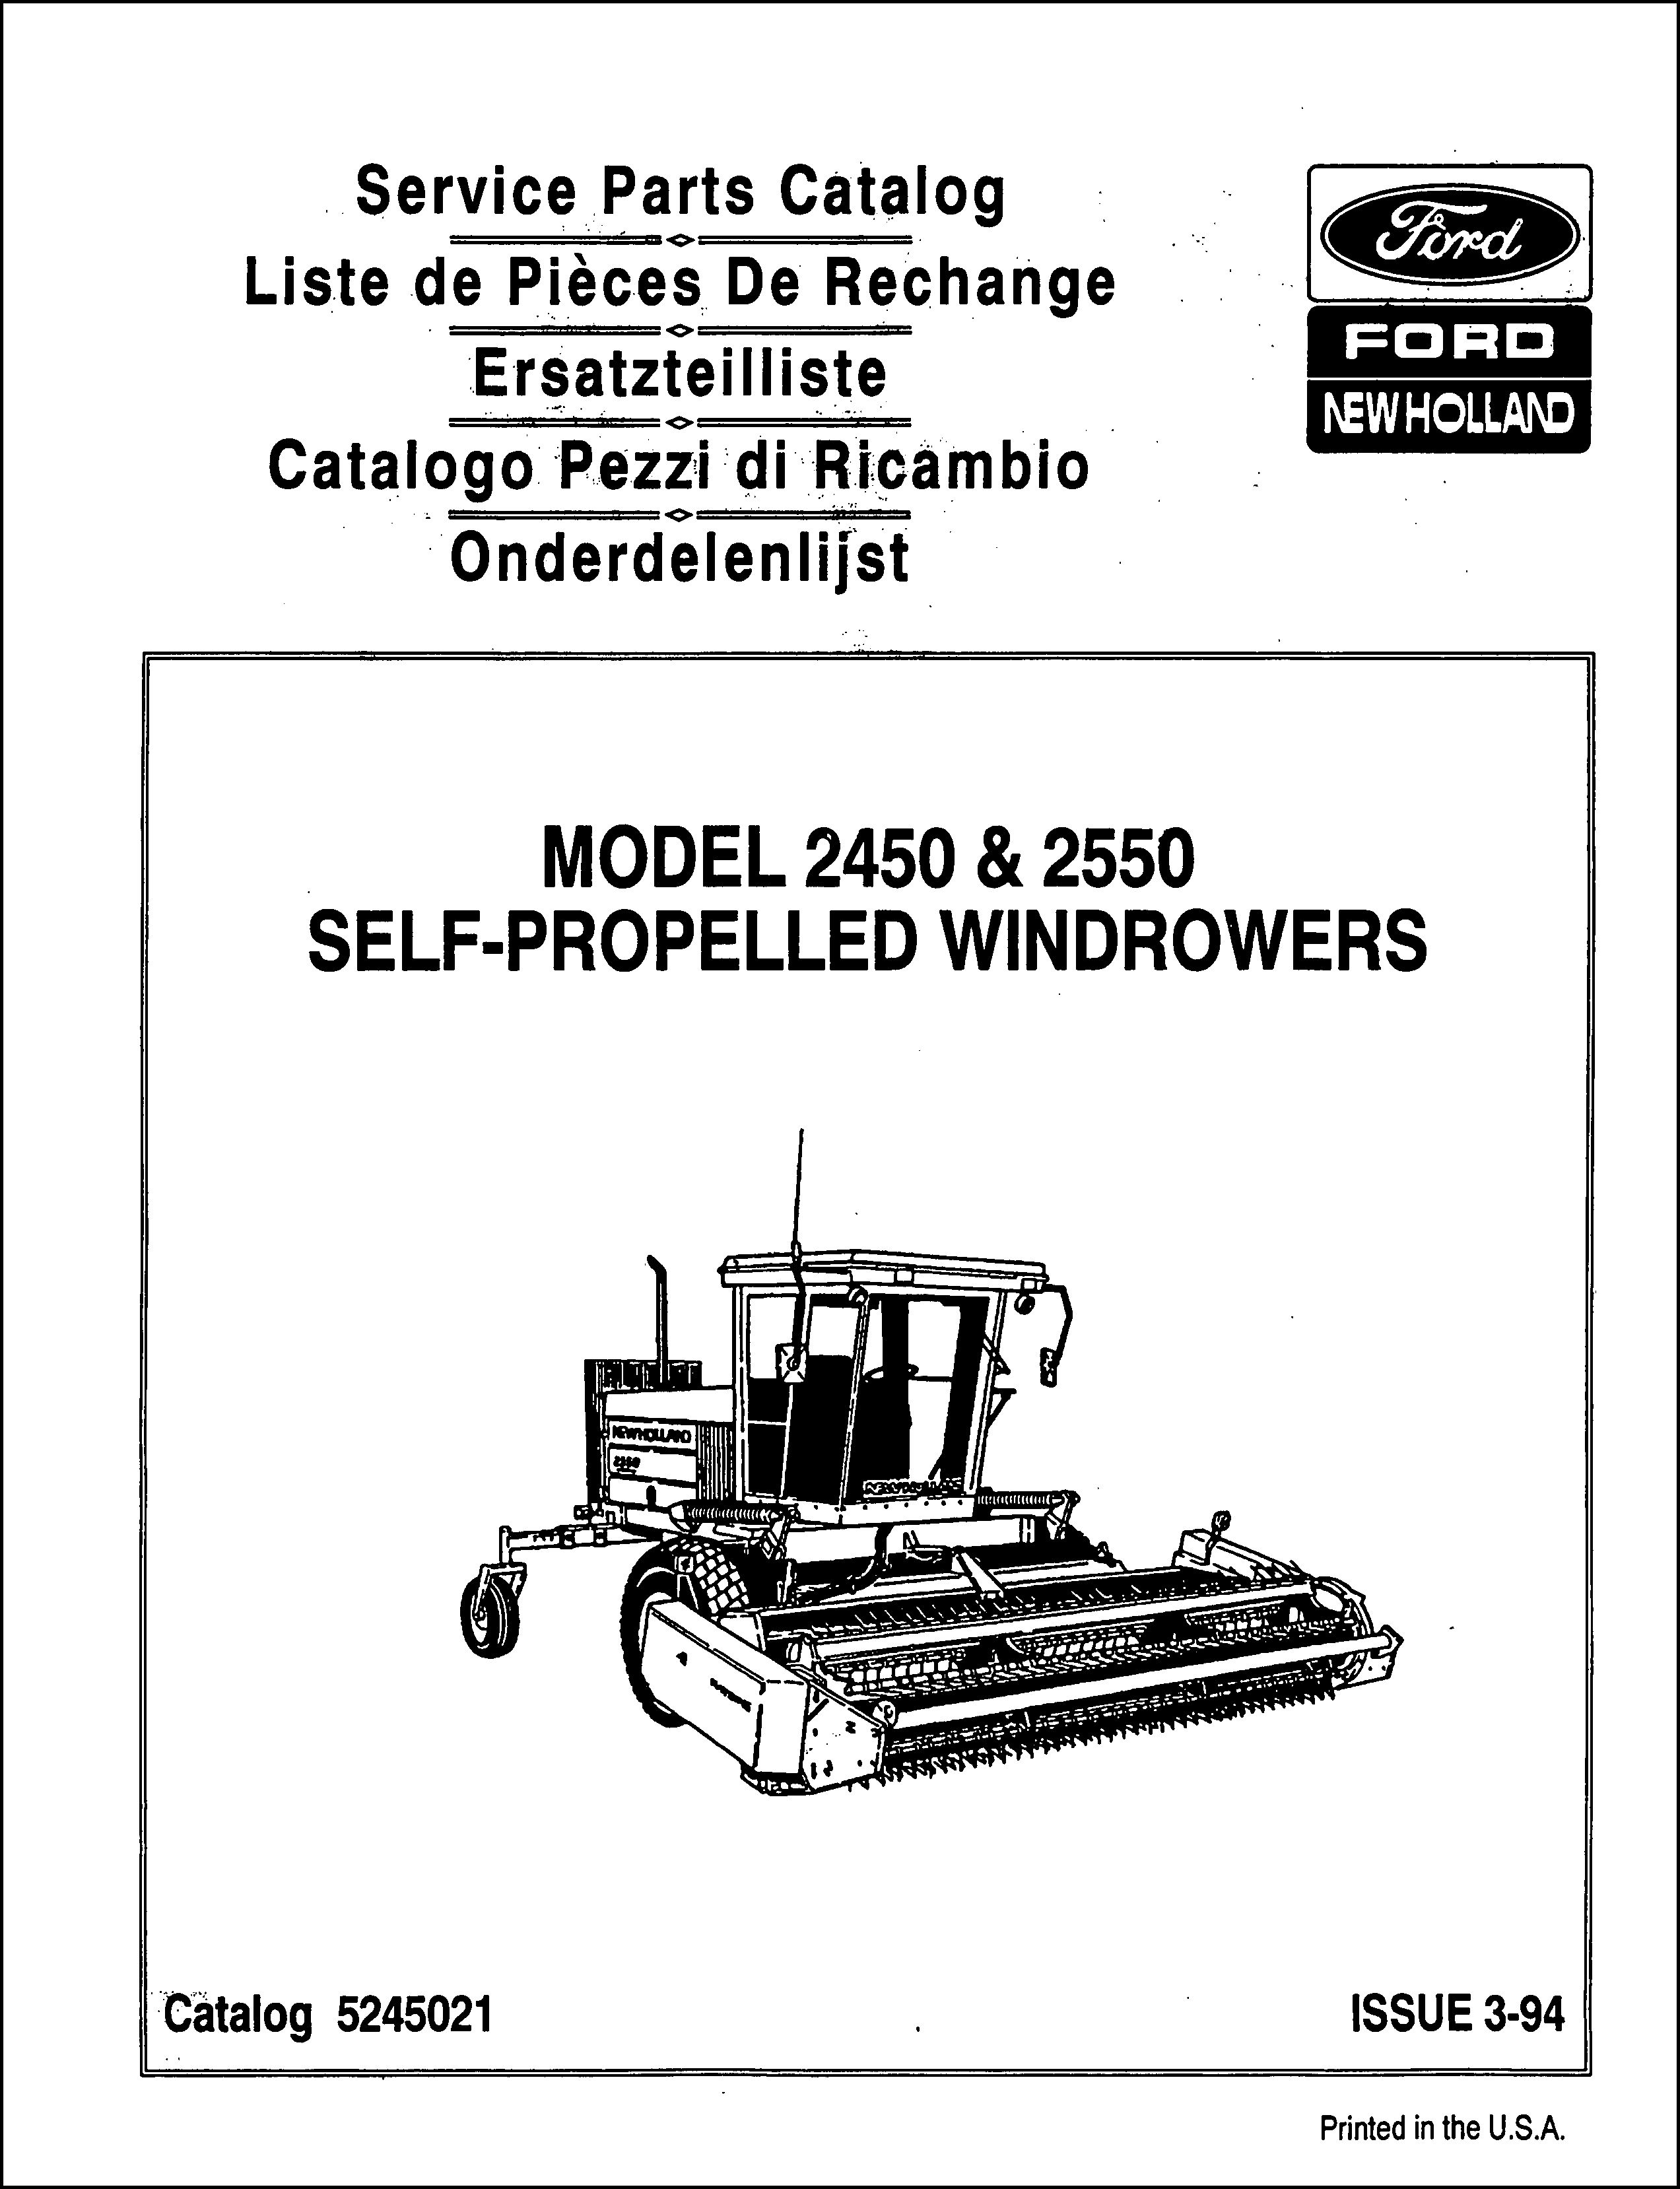 Ford New Holland Parts Manual For Service